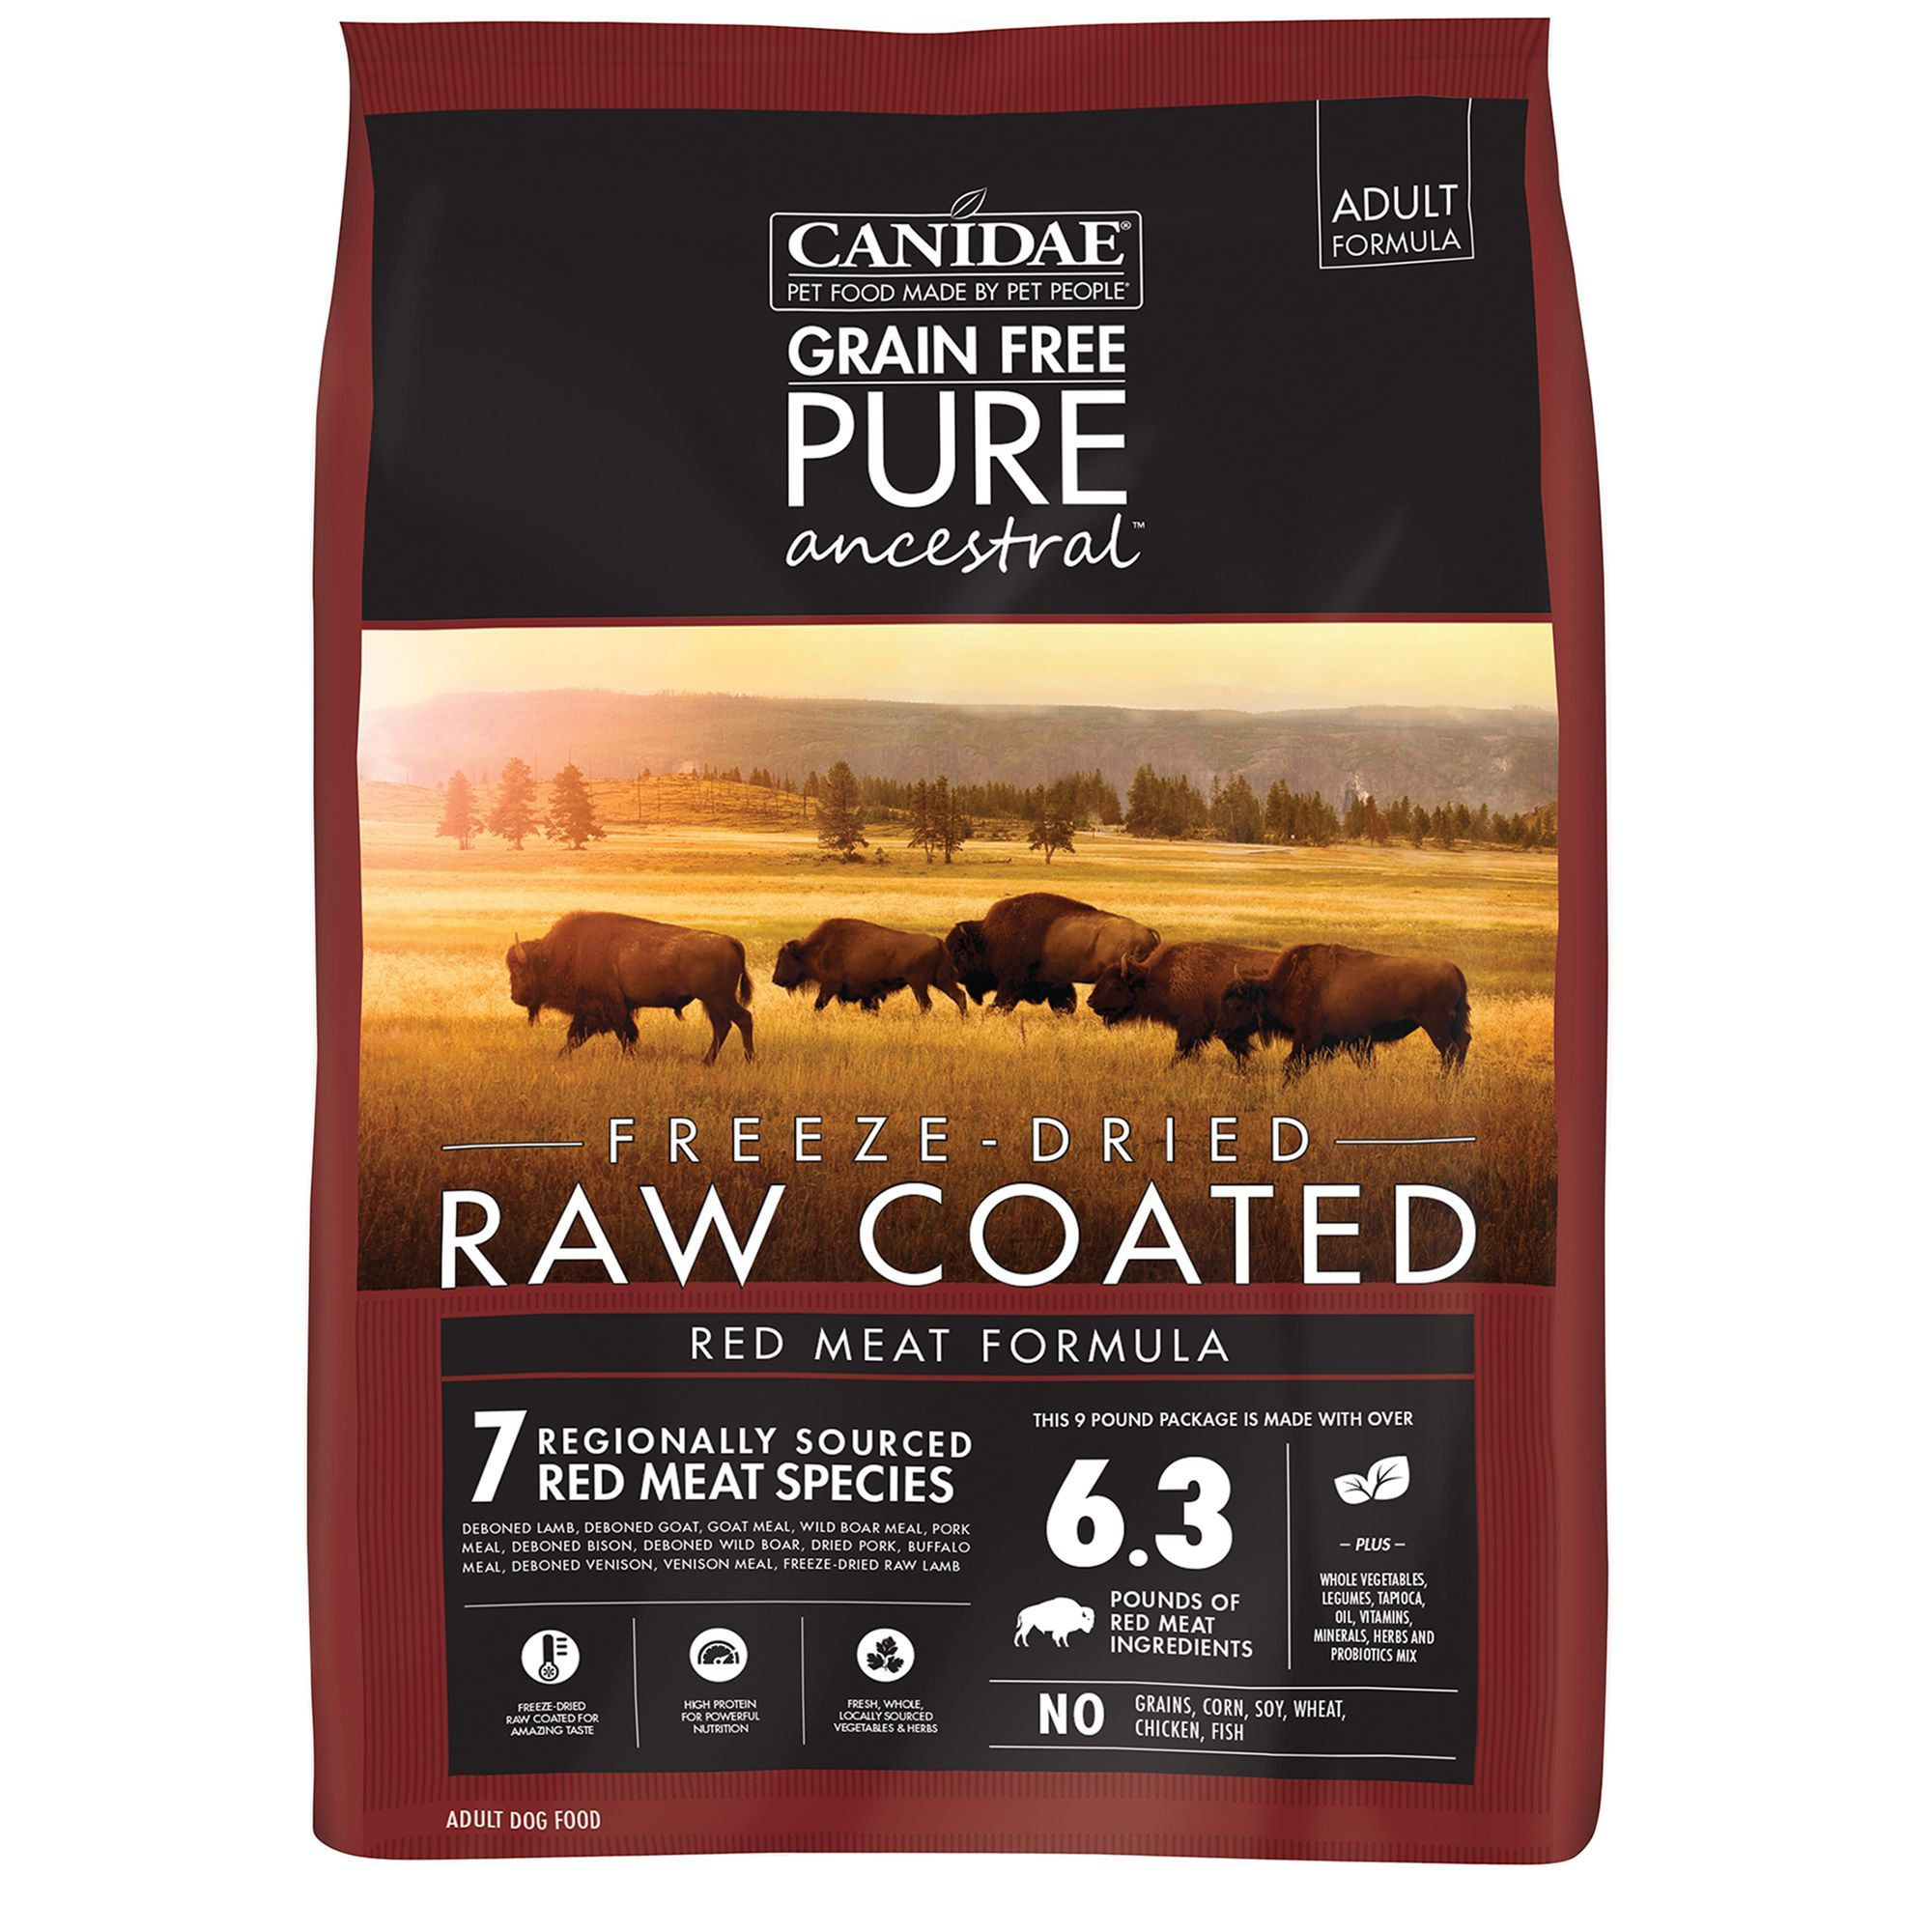 CANIDAE PURE Ancestral Diet Dog Food Raw, Natural, Grain